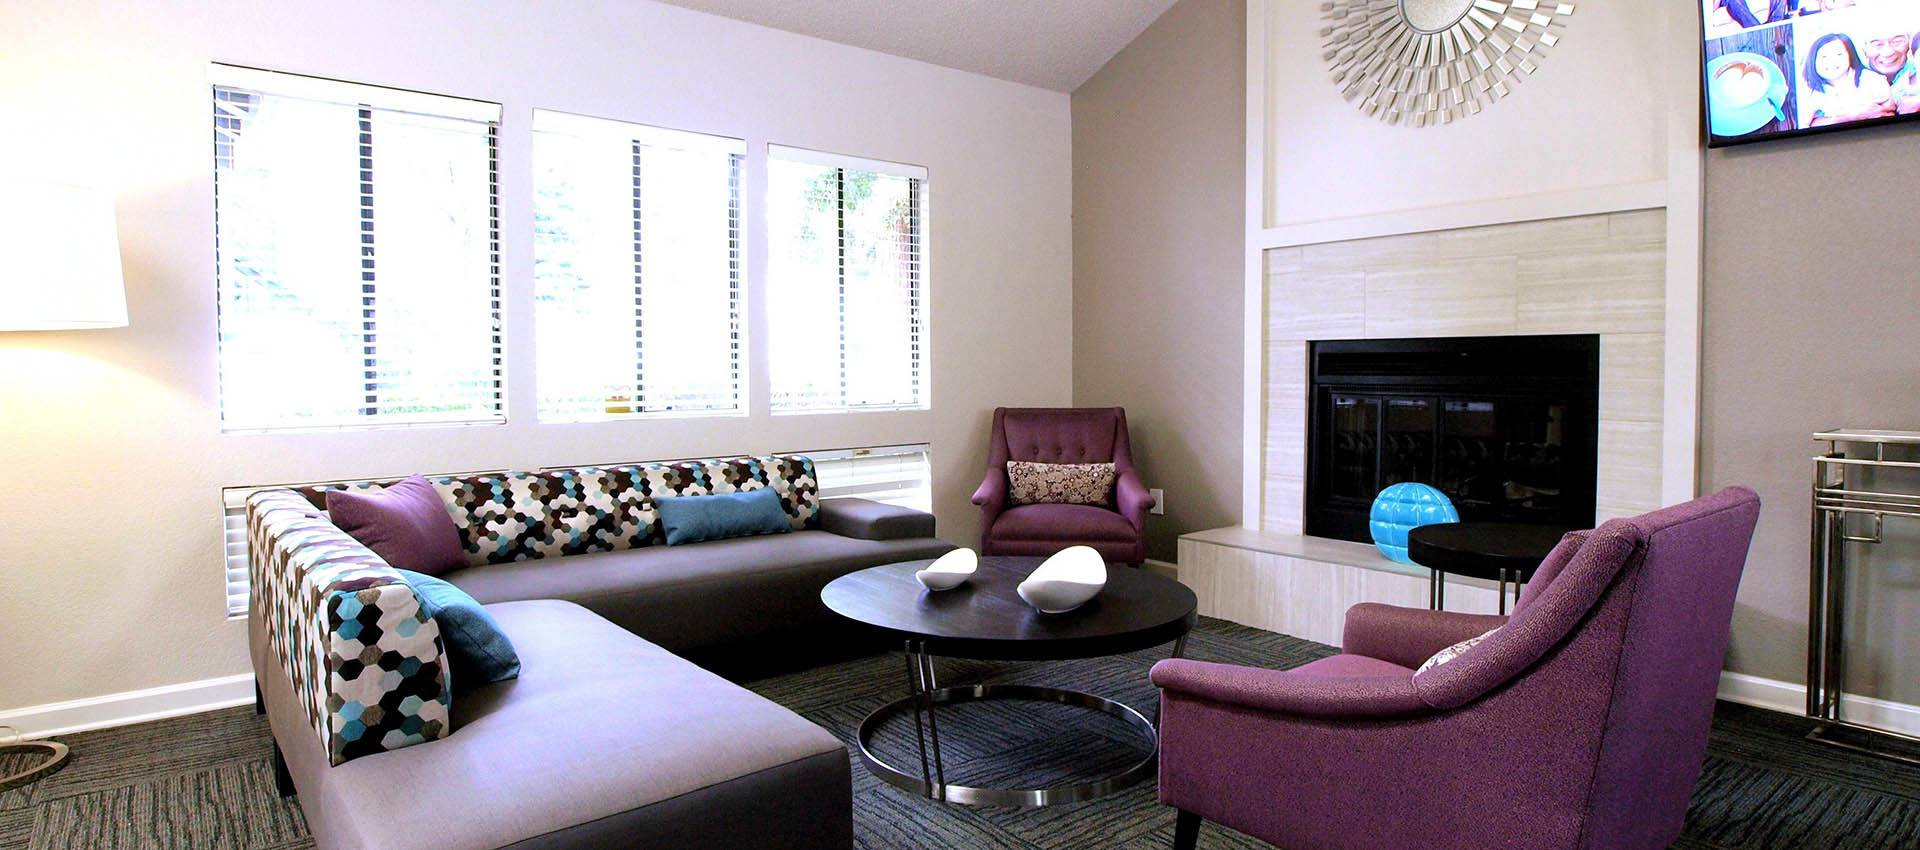 Lounge Seating at Plum Tree Apartment Homes in Martinez, CA